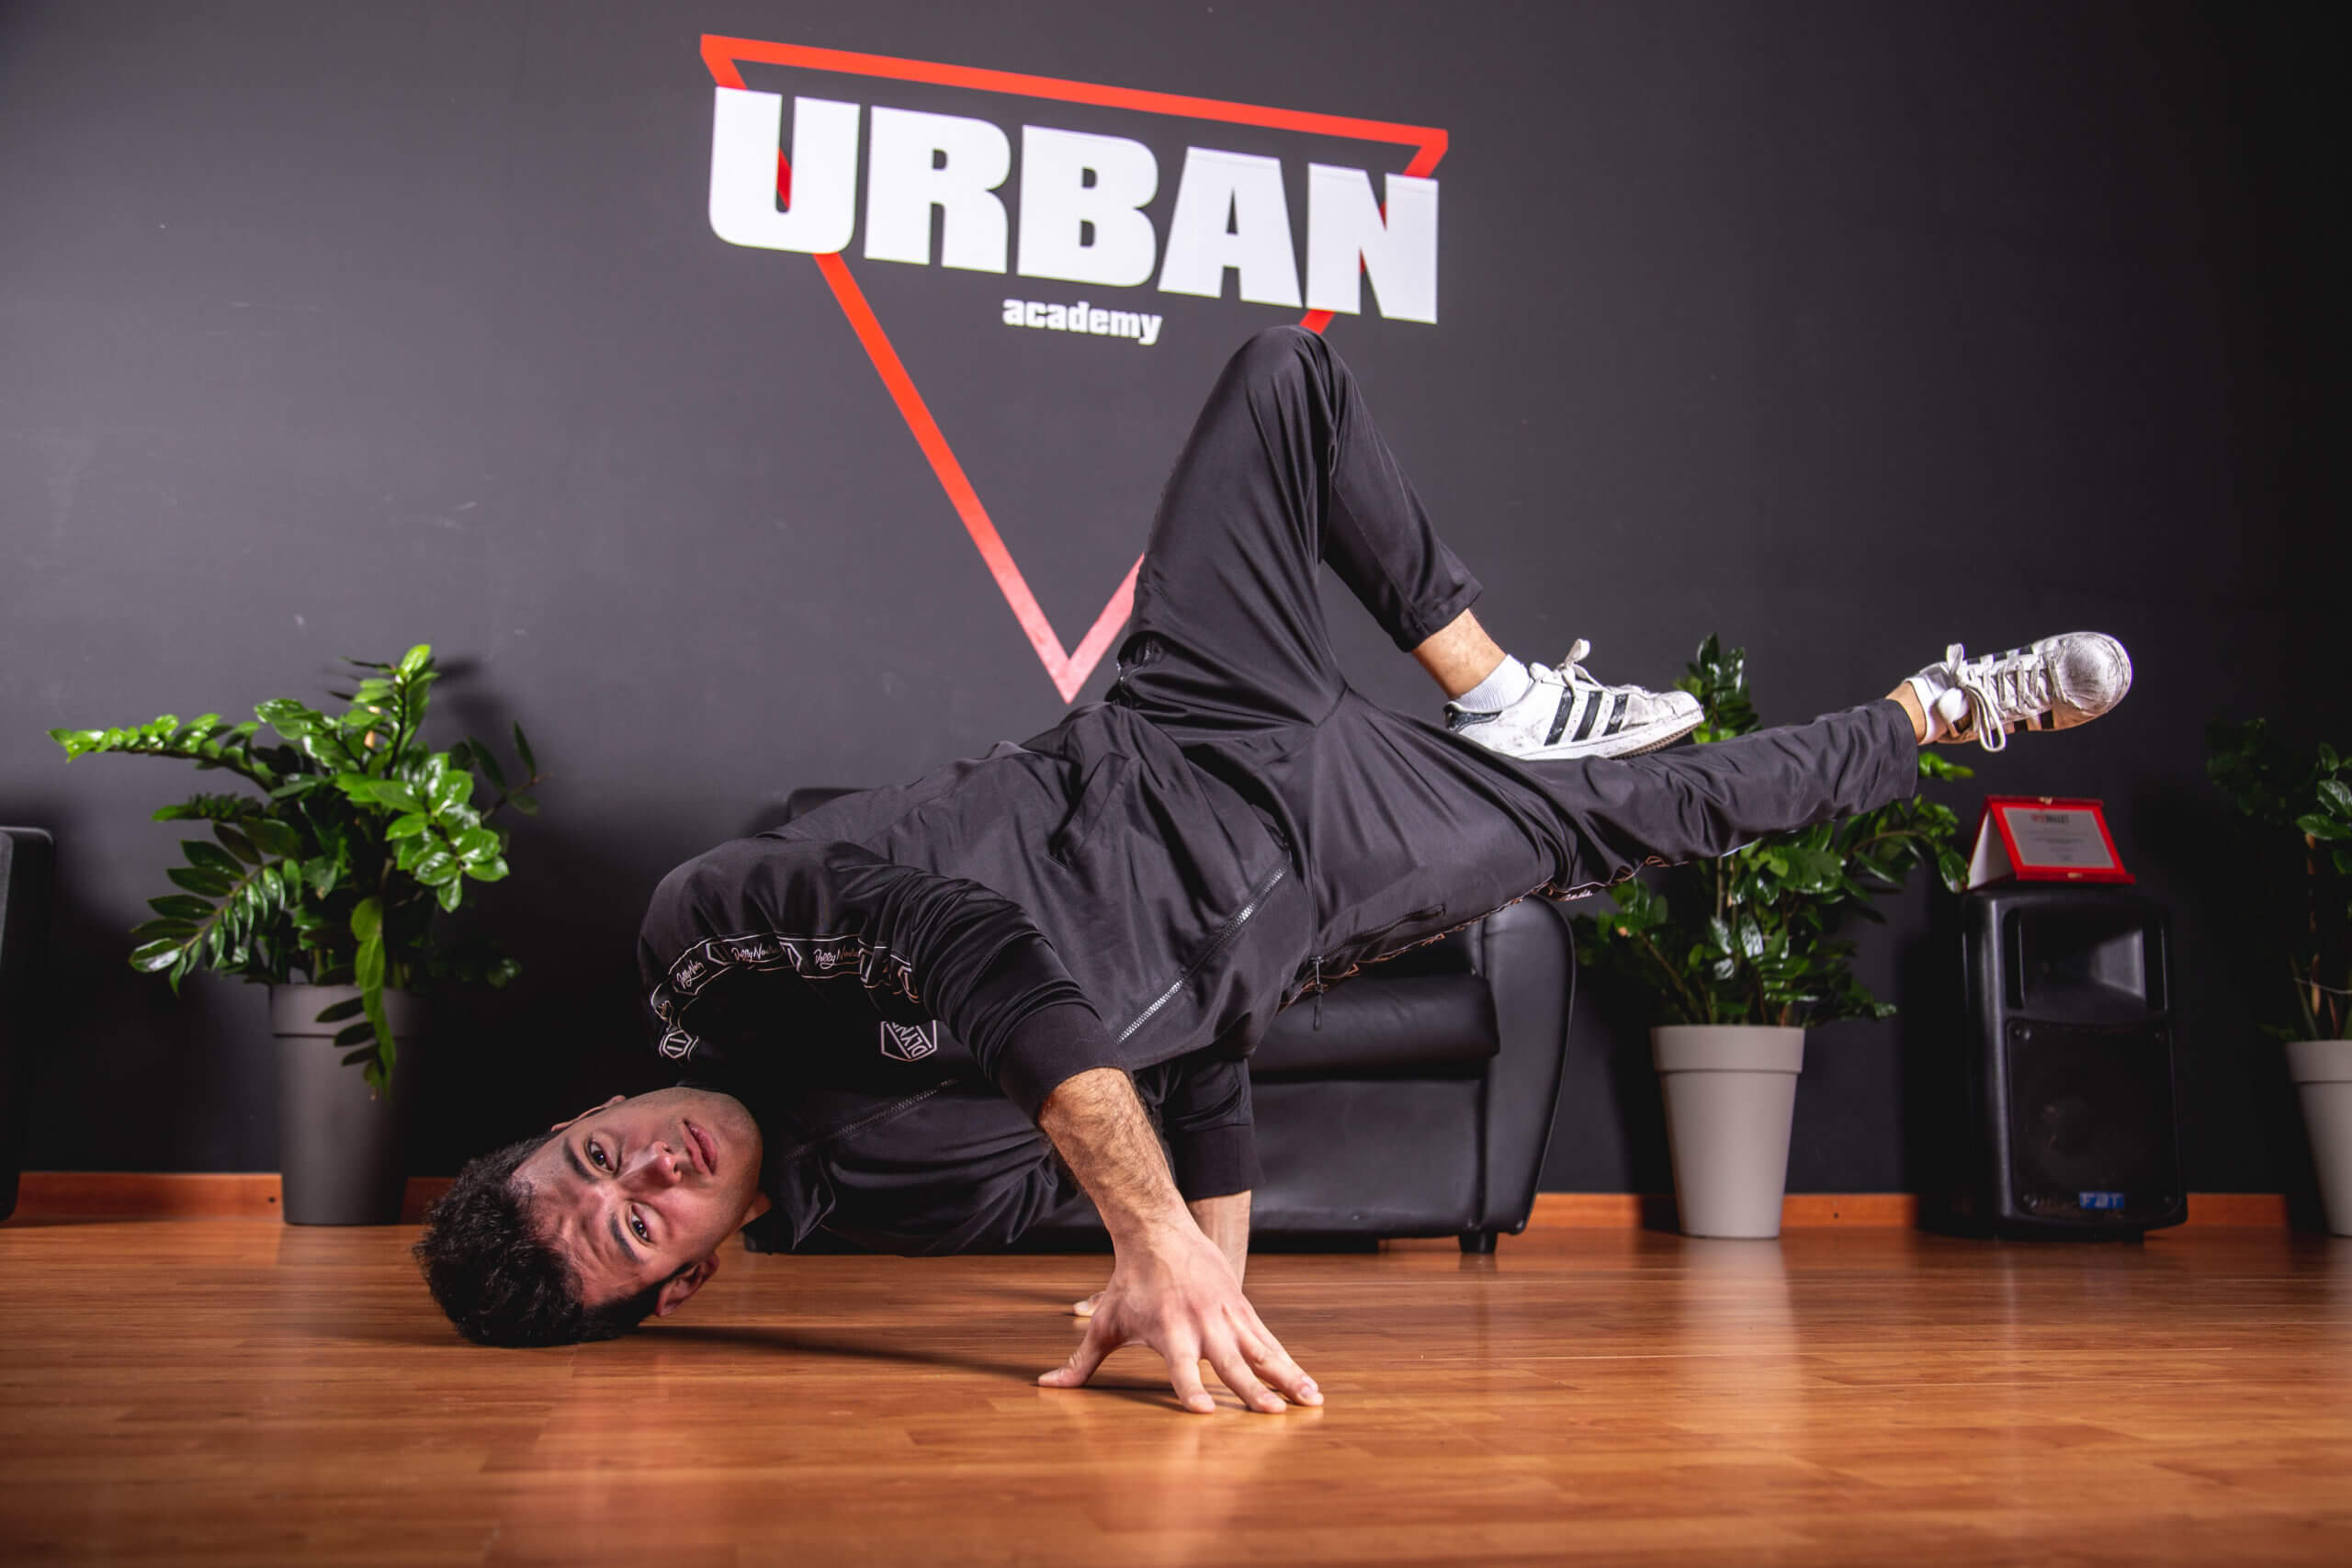 Breakdance-milano-ballerino-hiphop-danza-logan